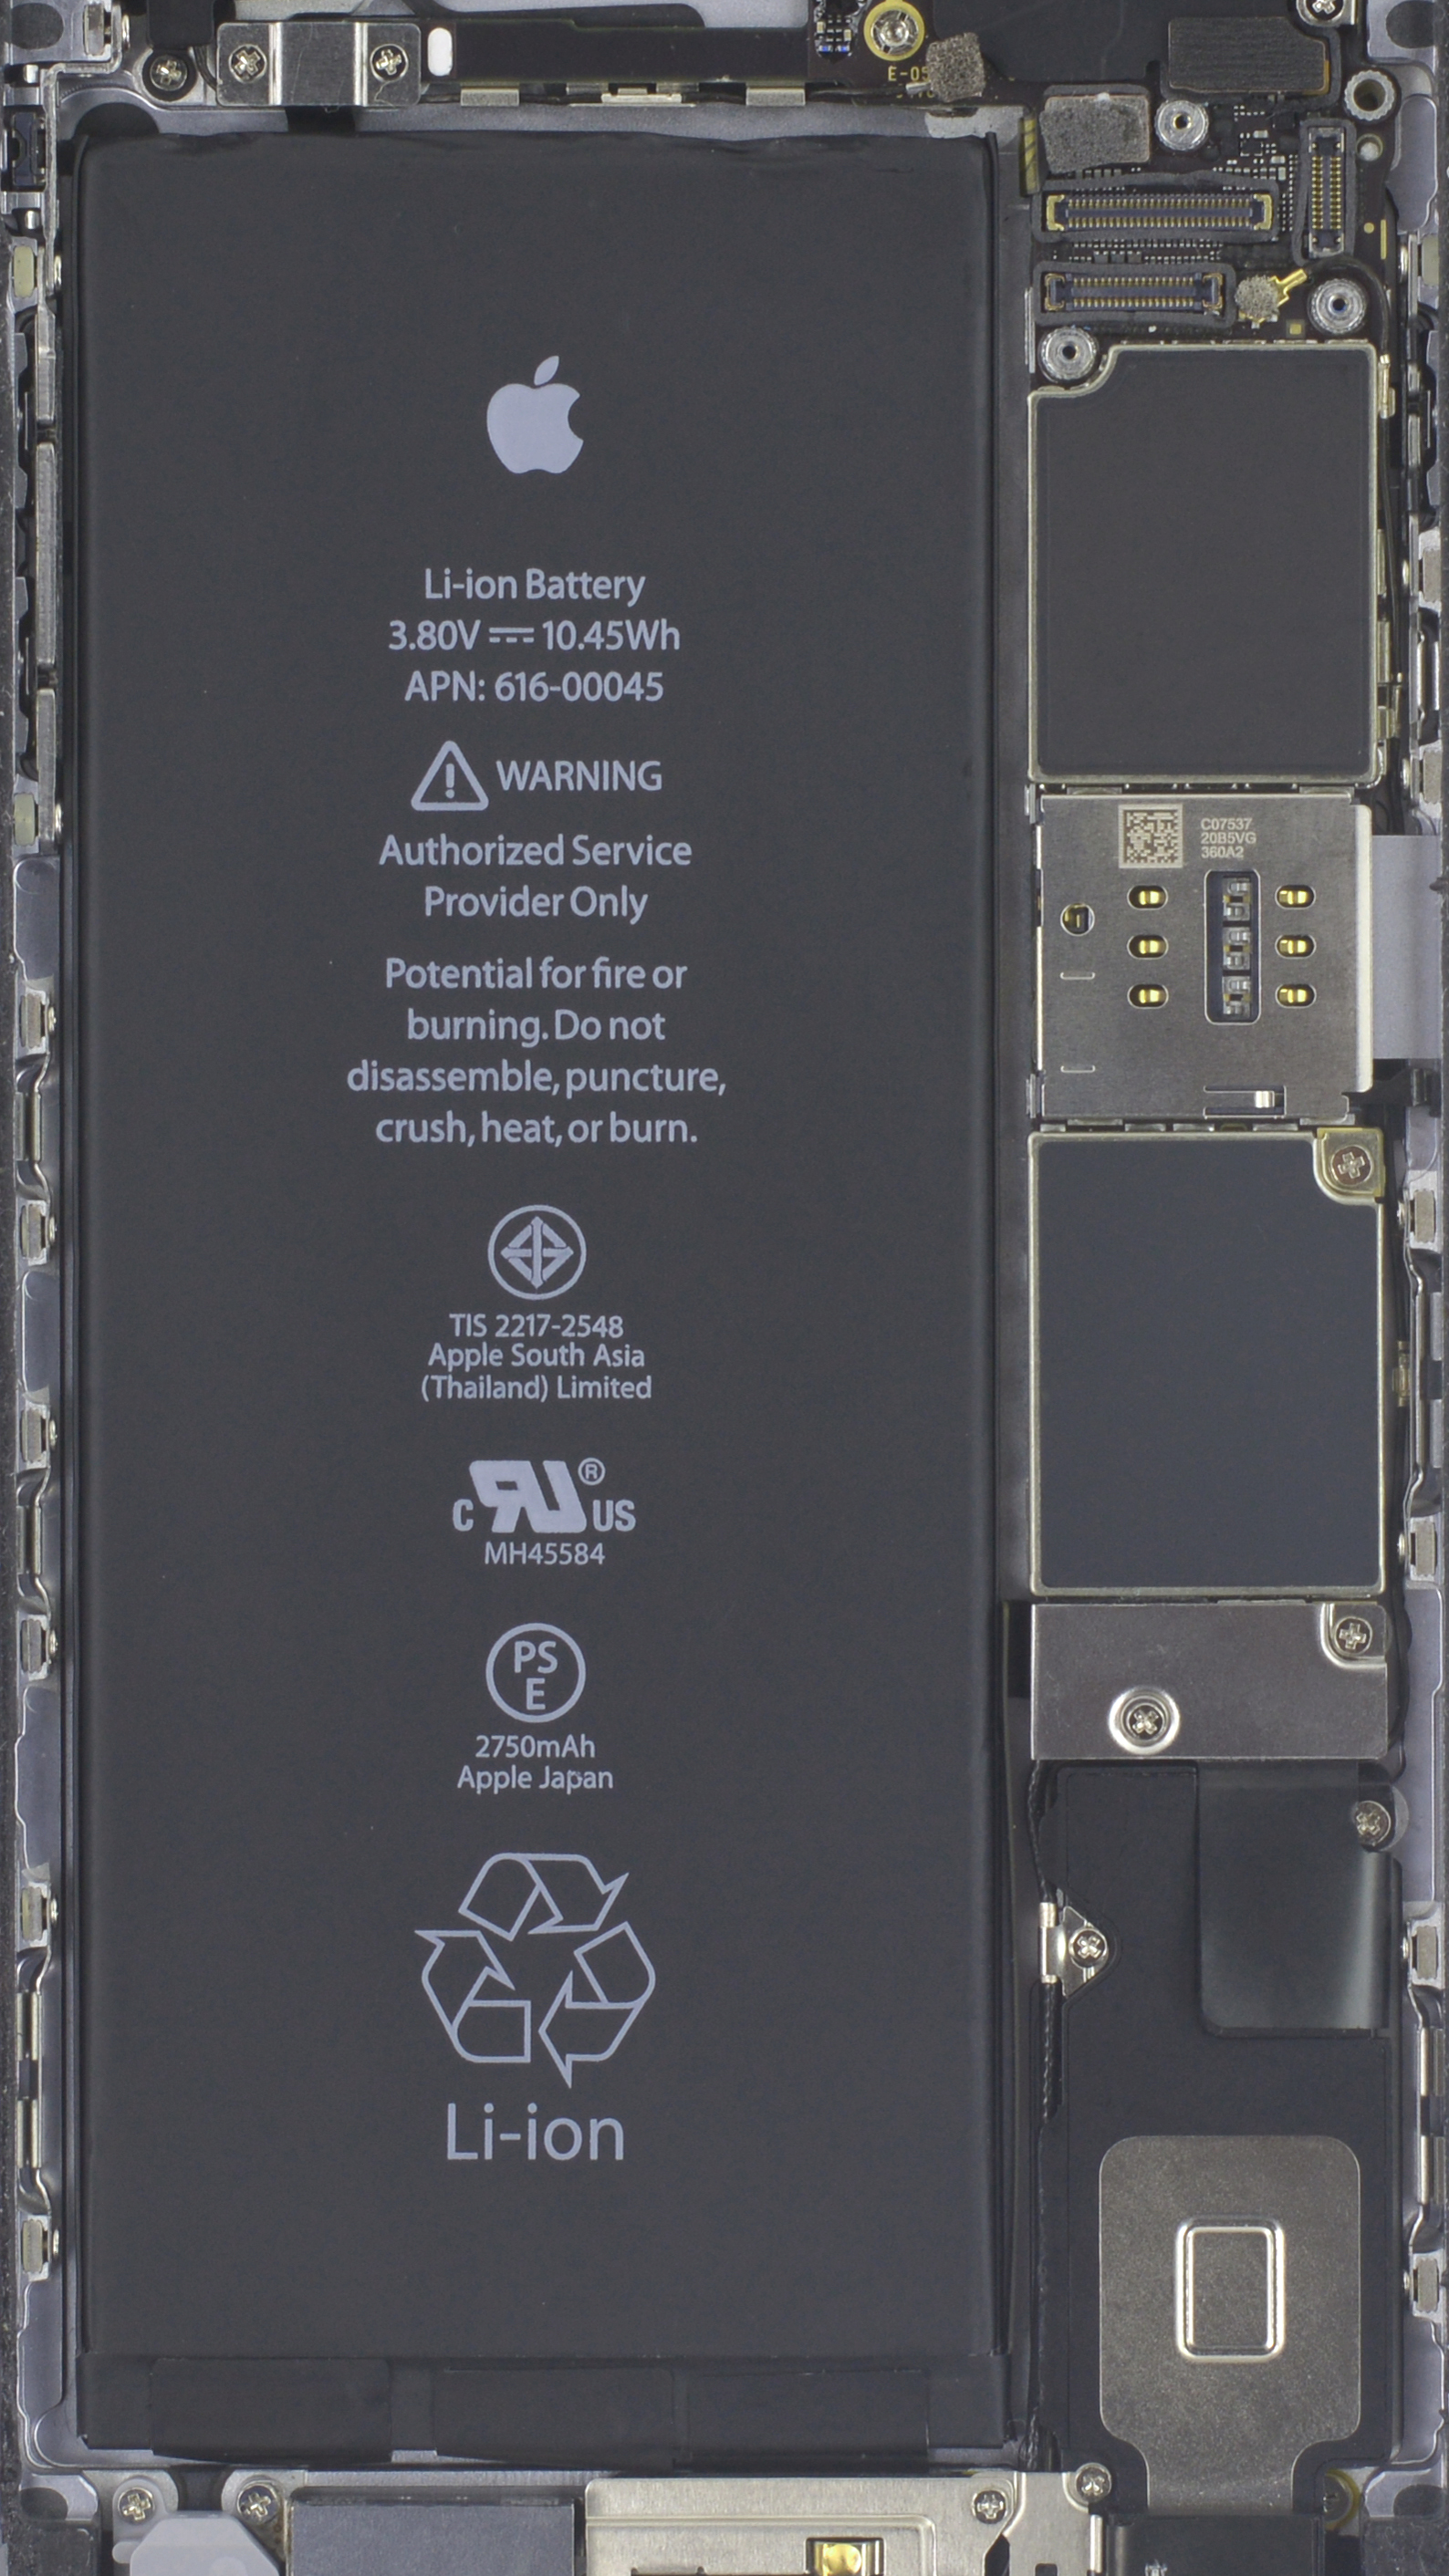 Iphone X See Through Wallpaper Wallpapers Of The Week Iphone 7 Internals